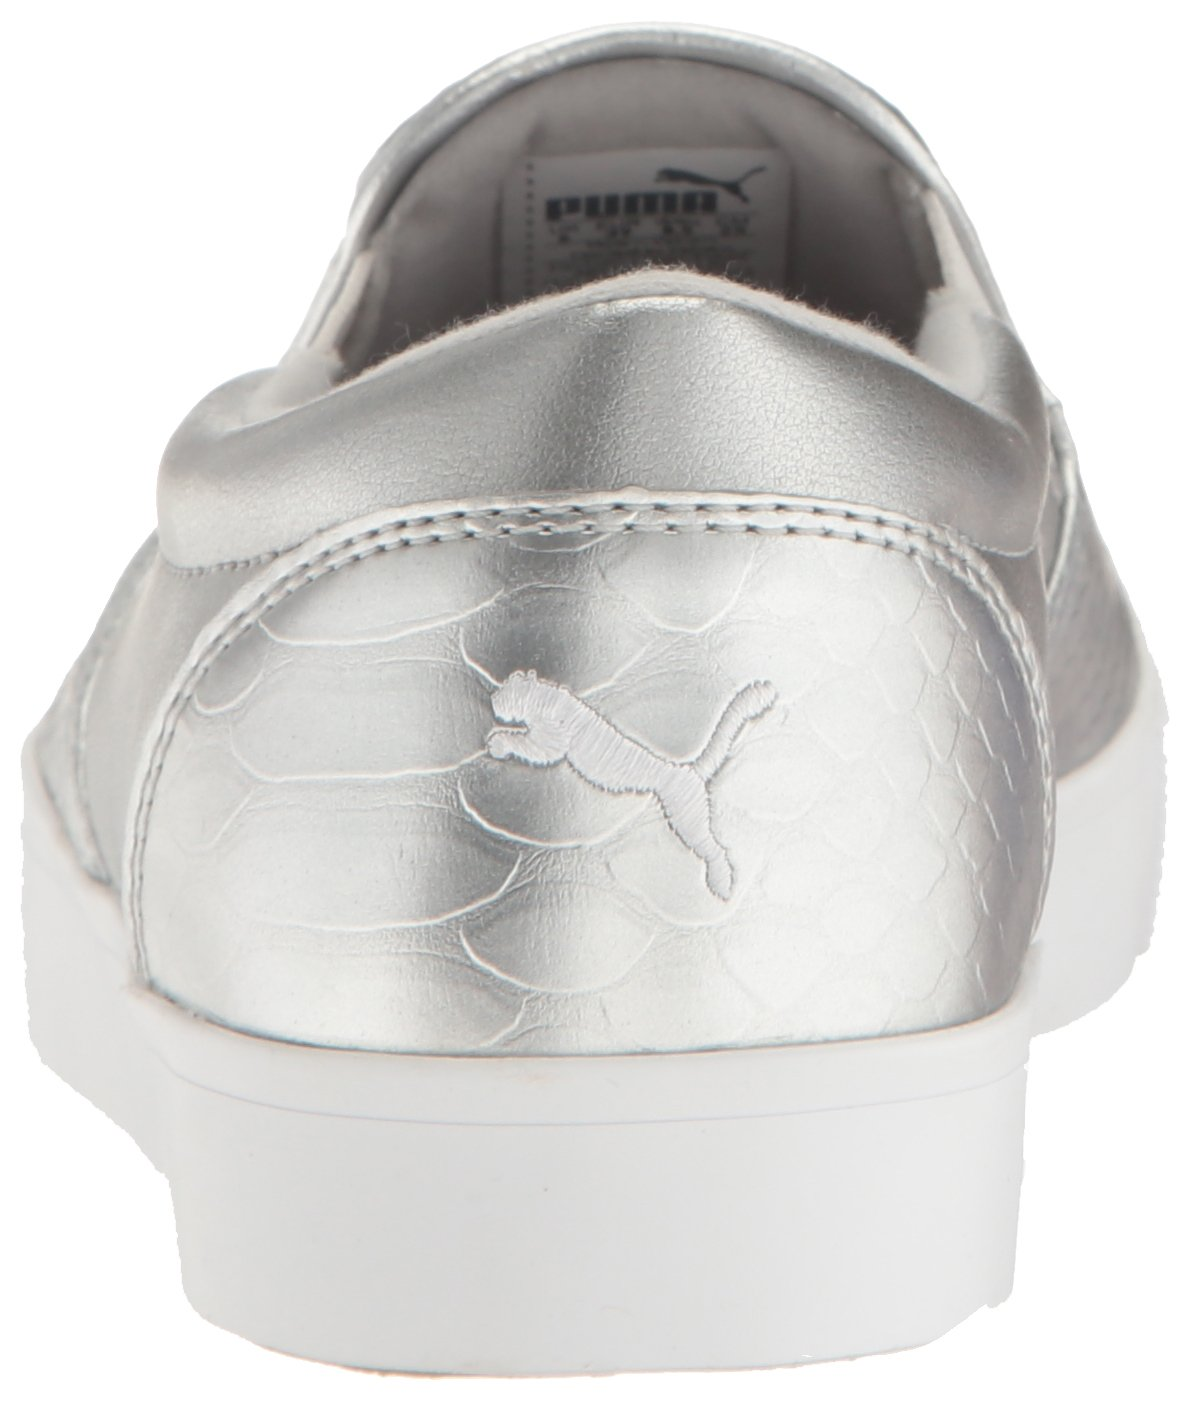 PUMA Women's Tustin Slip-on Golf-Shoes B01MSHLPR3 8.5 B(M) US|Puma Silver-puma White